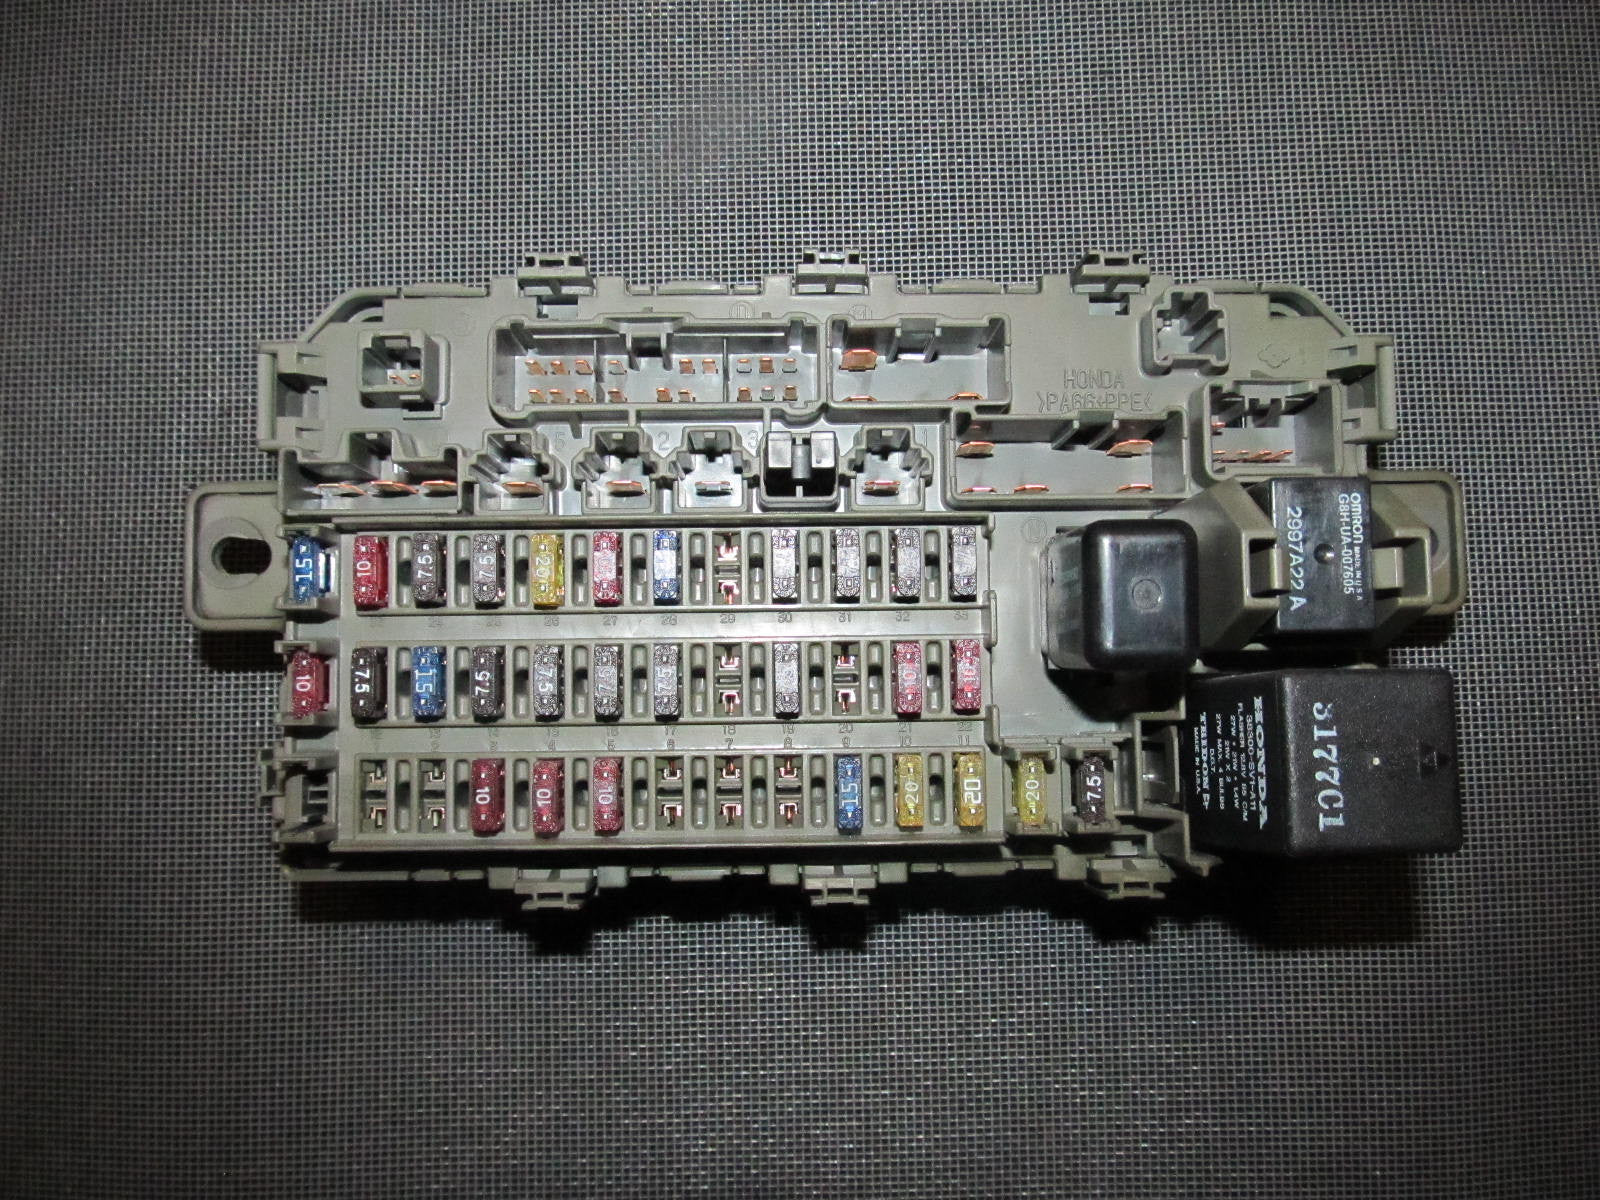 IMG_9687_e40c3657 cee5 4226 9211 04a229811583?v=1405129915 96 97 98 99 00 honda civic oem interior fuse box with relay 99 civic fuse diagram at readyjetset.co